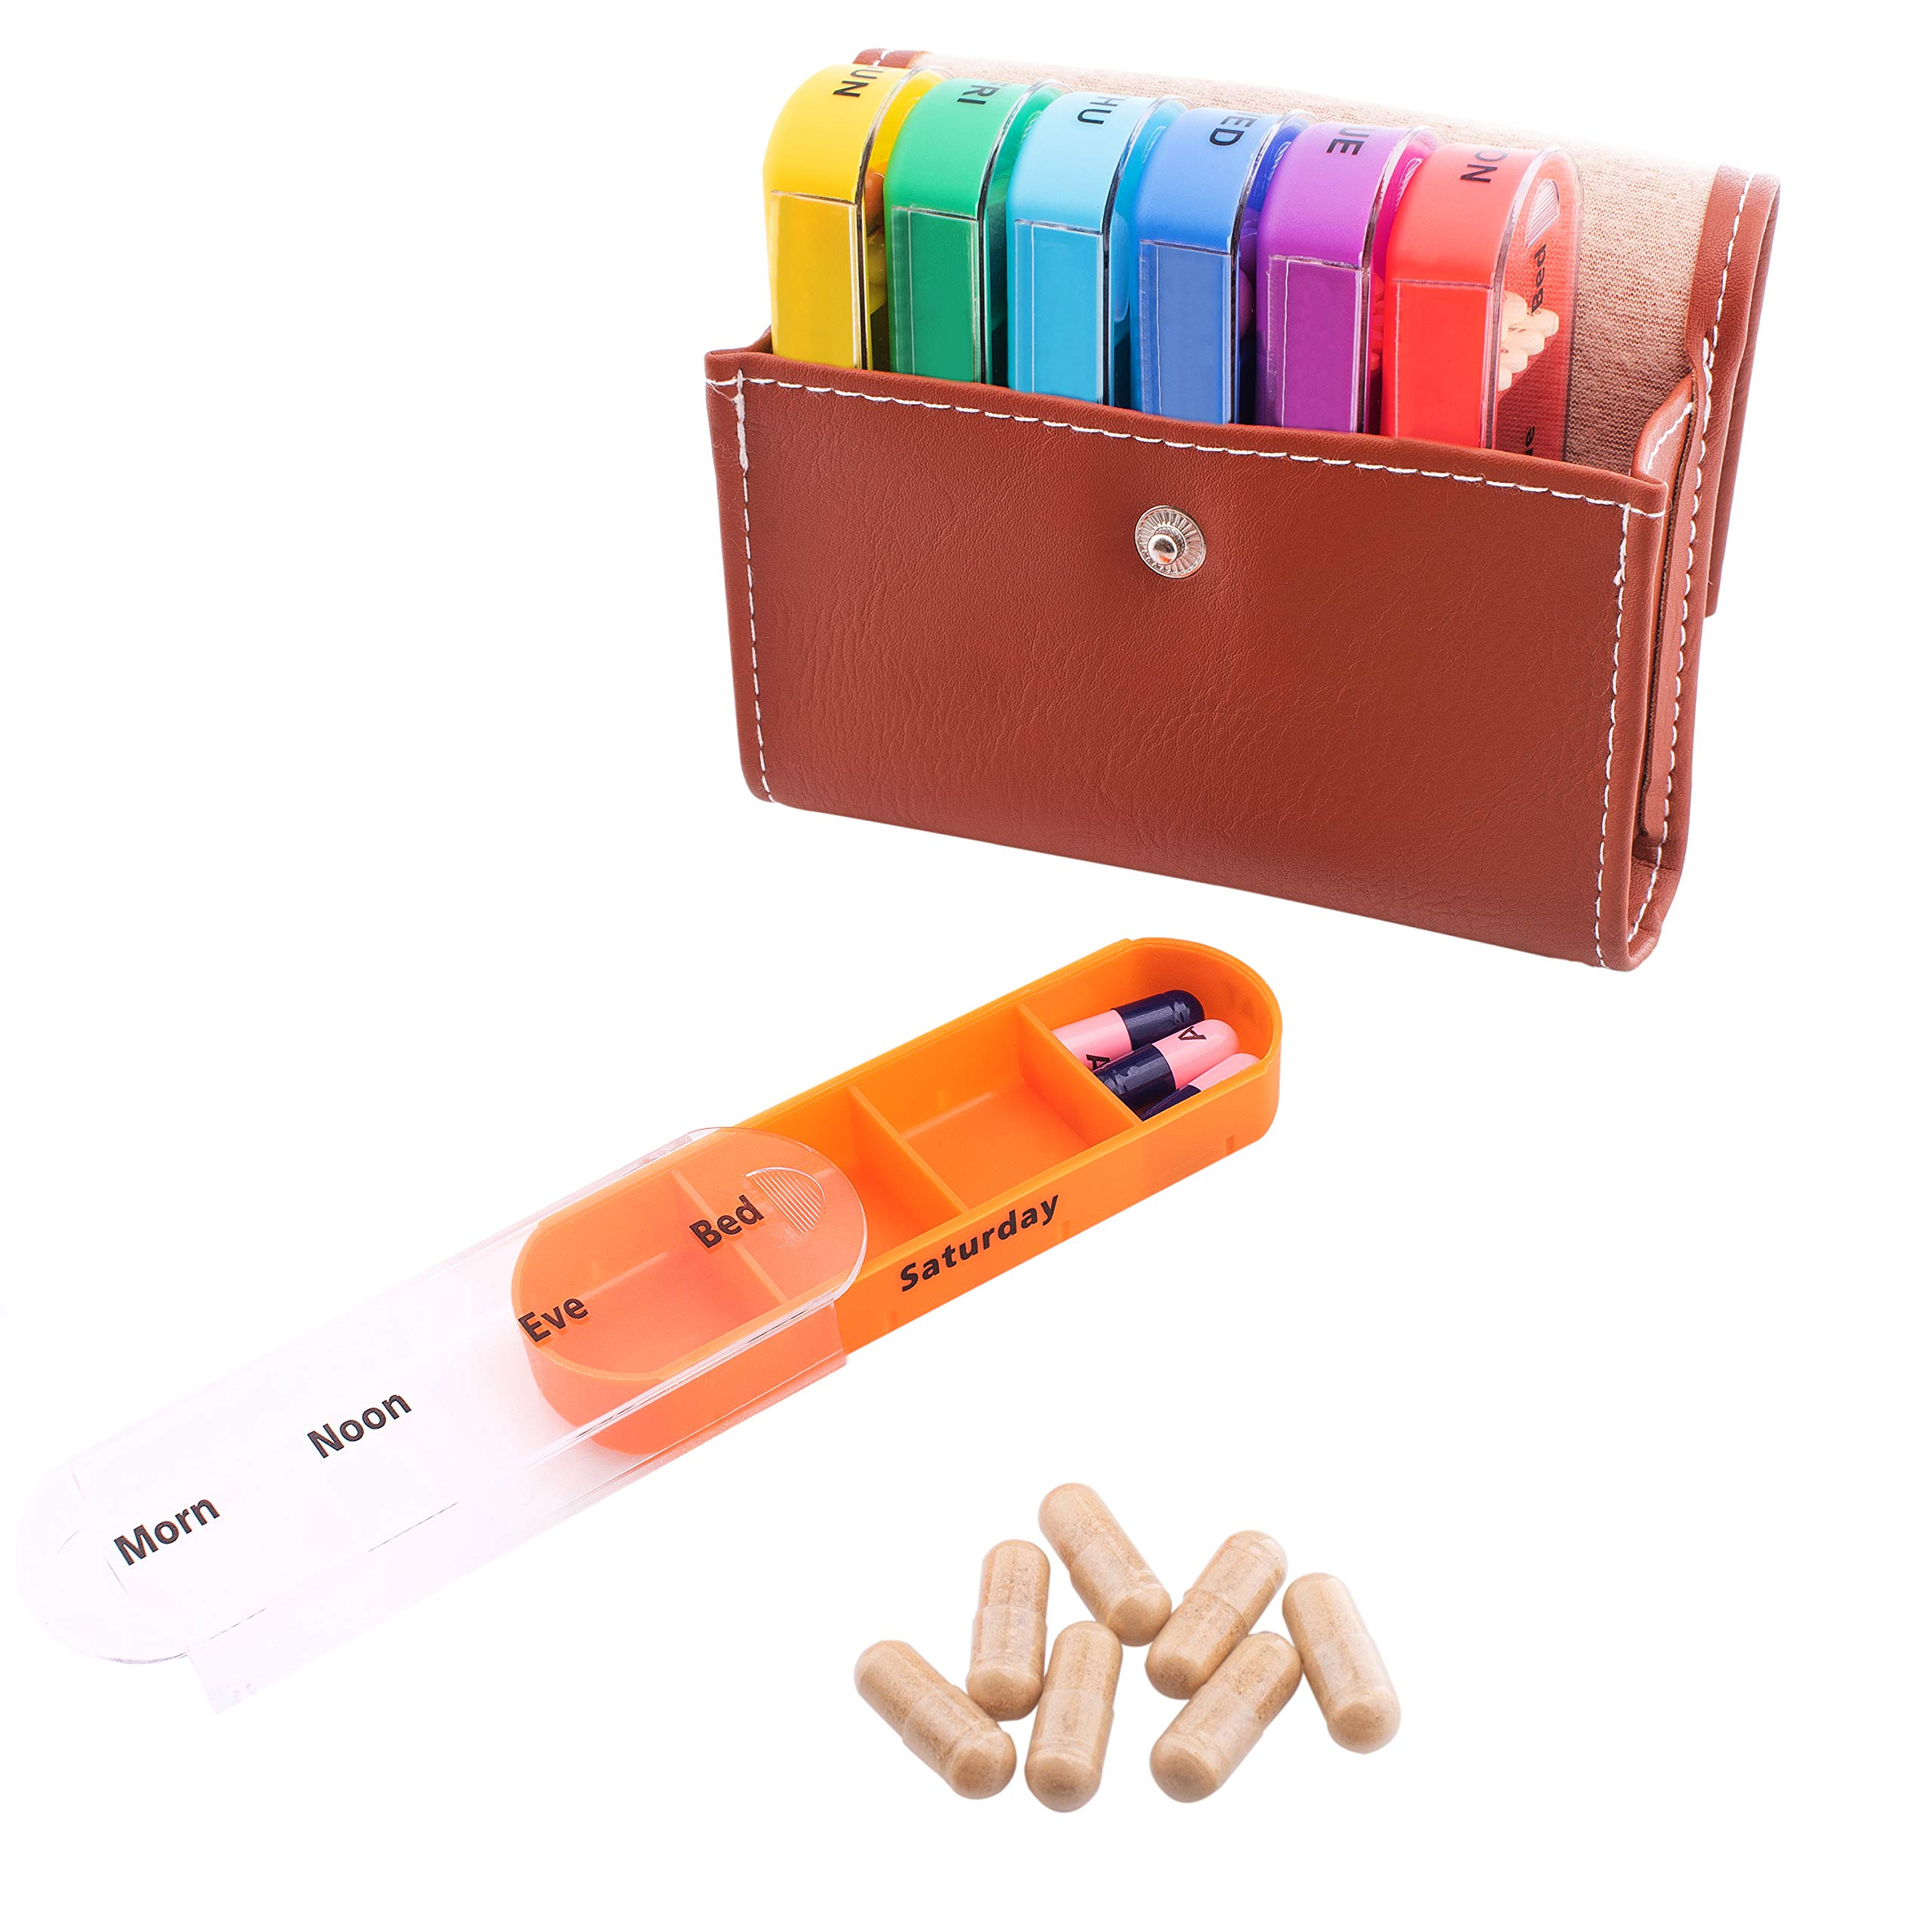 Pill Organizer Box with Weekly Case | Includes Brown Traveling Leather PU Carrying Pouch | Travel Medication, Prescription, Vitamin Dispenser | Reminder Daily AM PM and Day Night 7 Compartments